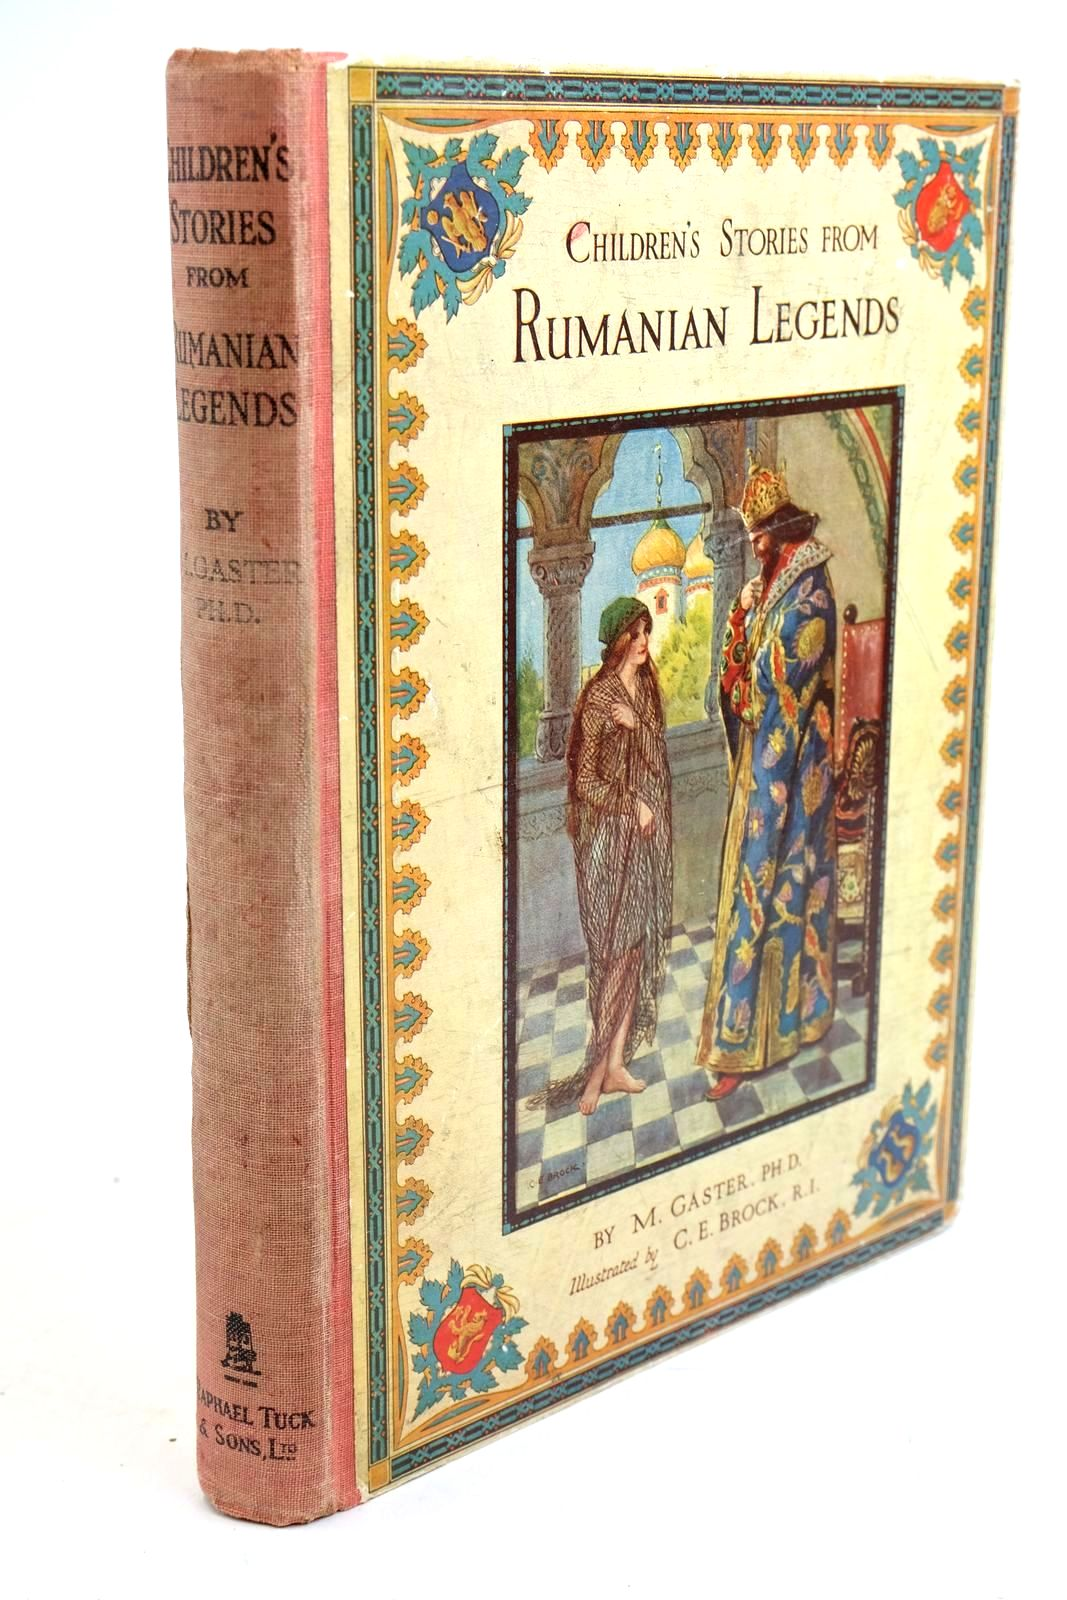 Photo of CHILDREN'S STORIES FROM RUMANIAN LEGENDS AND FAIRY TALES written by Gaster,  illustrated by Brock, C.E. published by Raphael Tuck & Sons Ltd. (STOCK CODE: 1321622)  for sale by Stella & Rose's Books